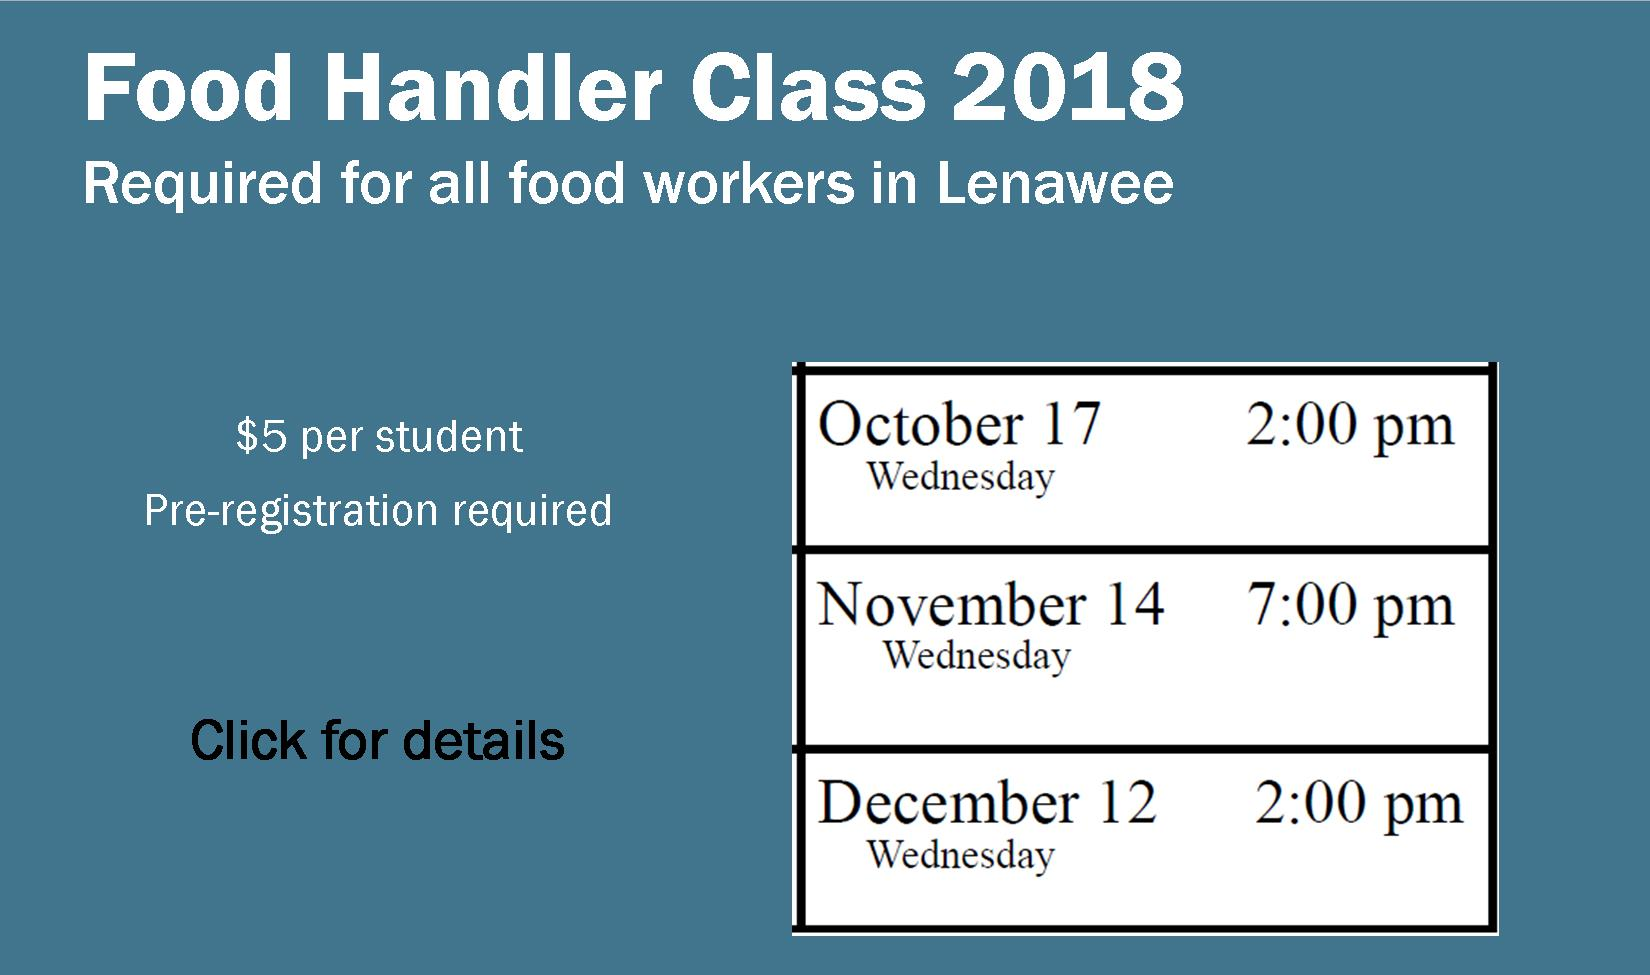 Food Handler Class 2018. Required for all food workers in Lenawee. $5 per student. Pre-registration